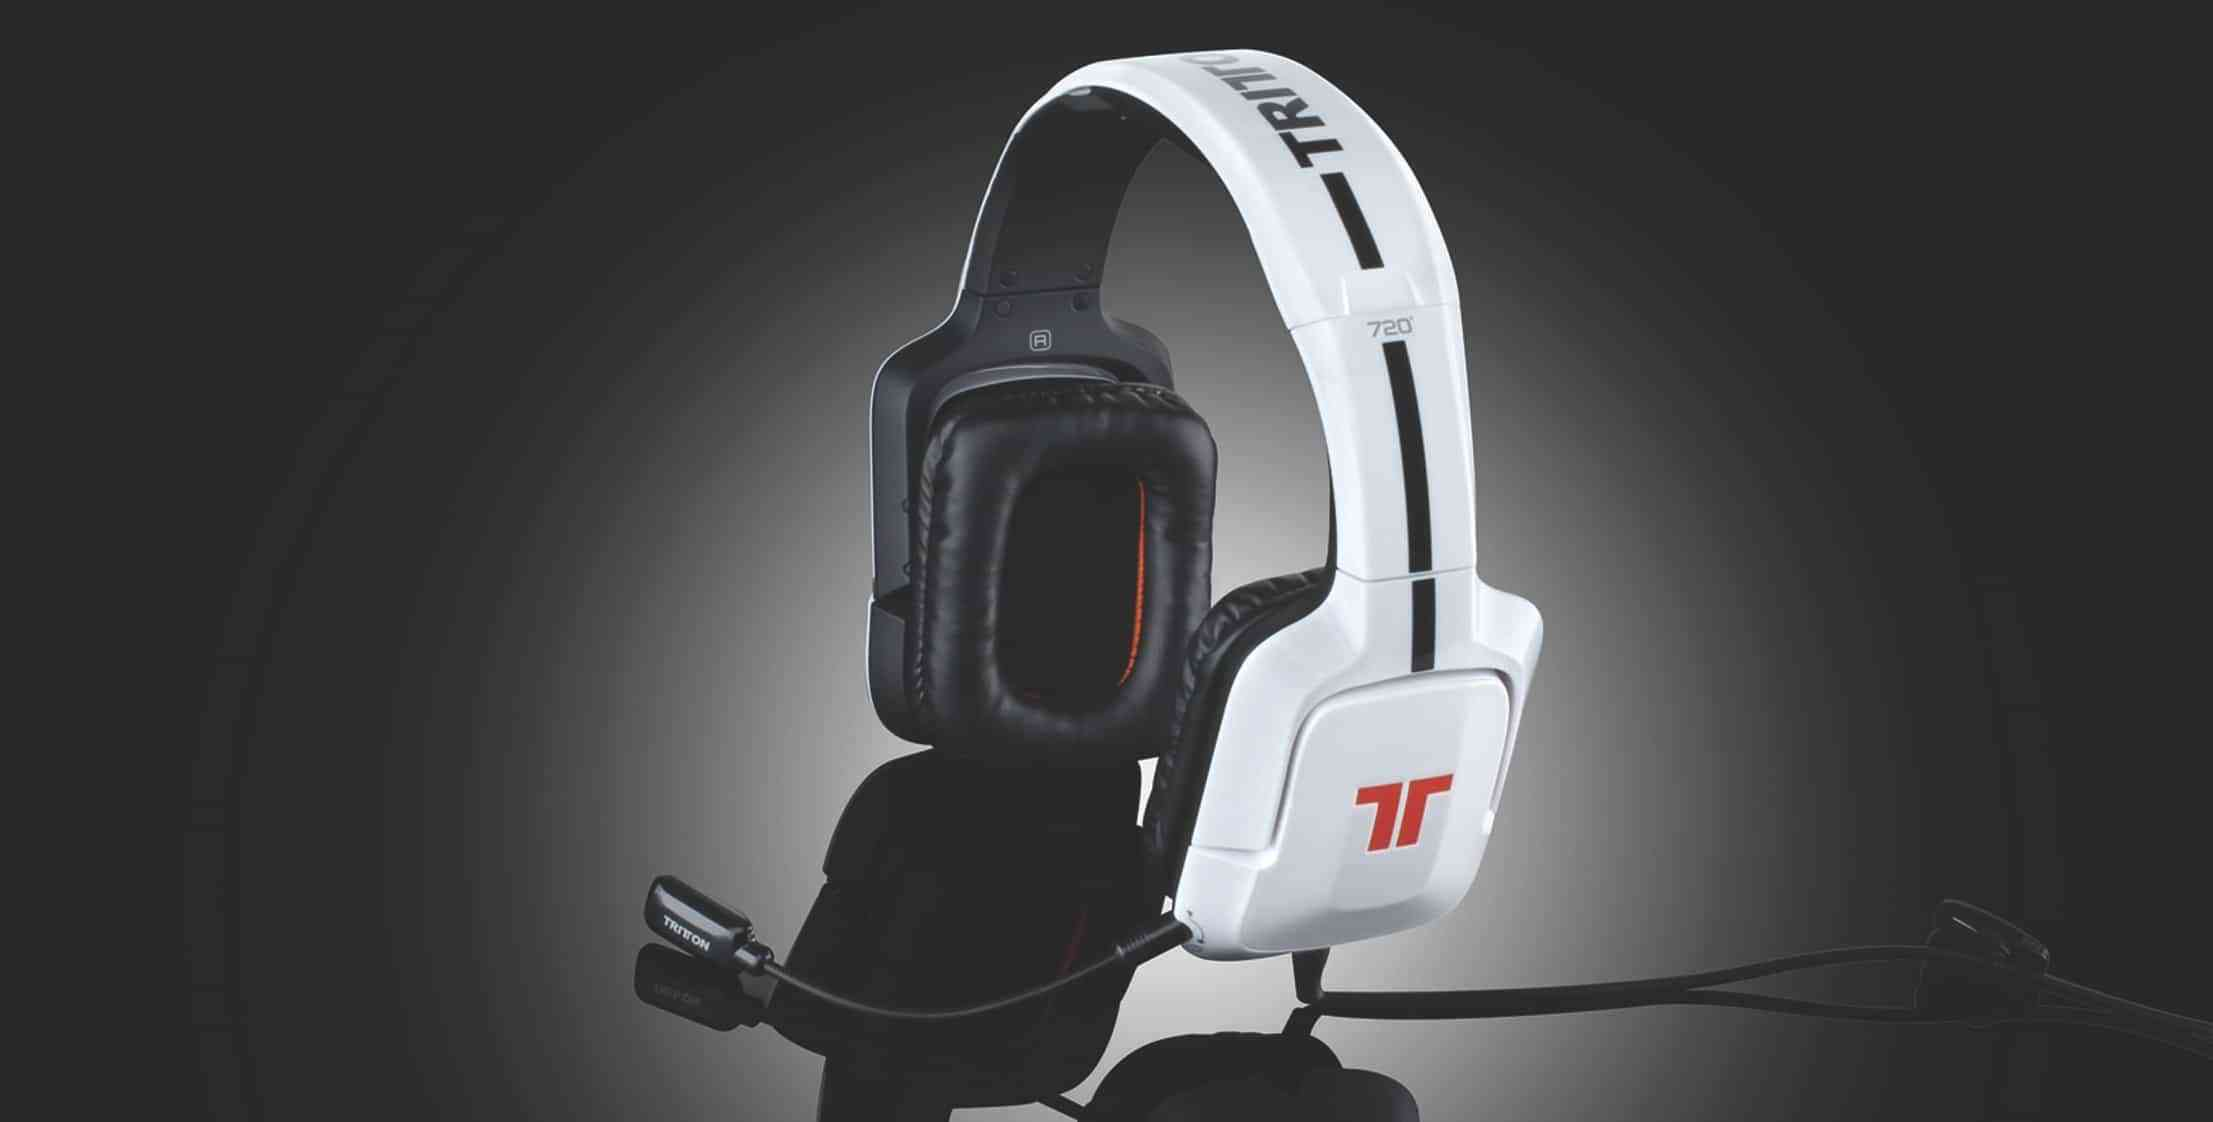 tritton headset xbox 360 hook up Tritton xbox 360 ax pro dolby gaming headset allowing you to hook up any video game console that supports it (xbox, xbox 360, playstation 2.